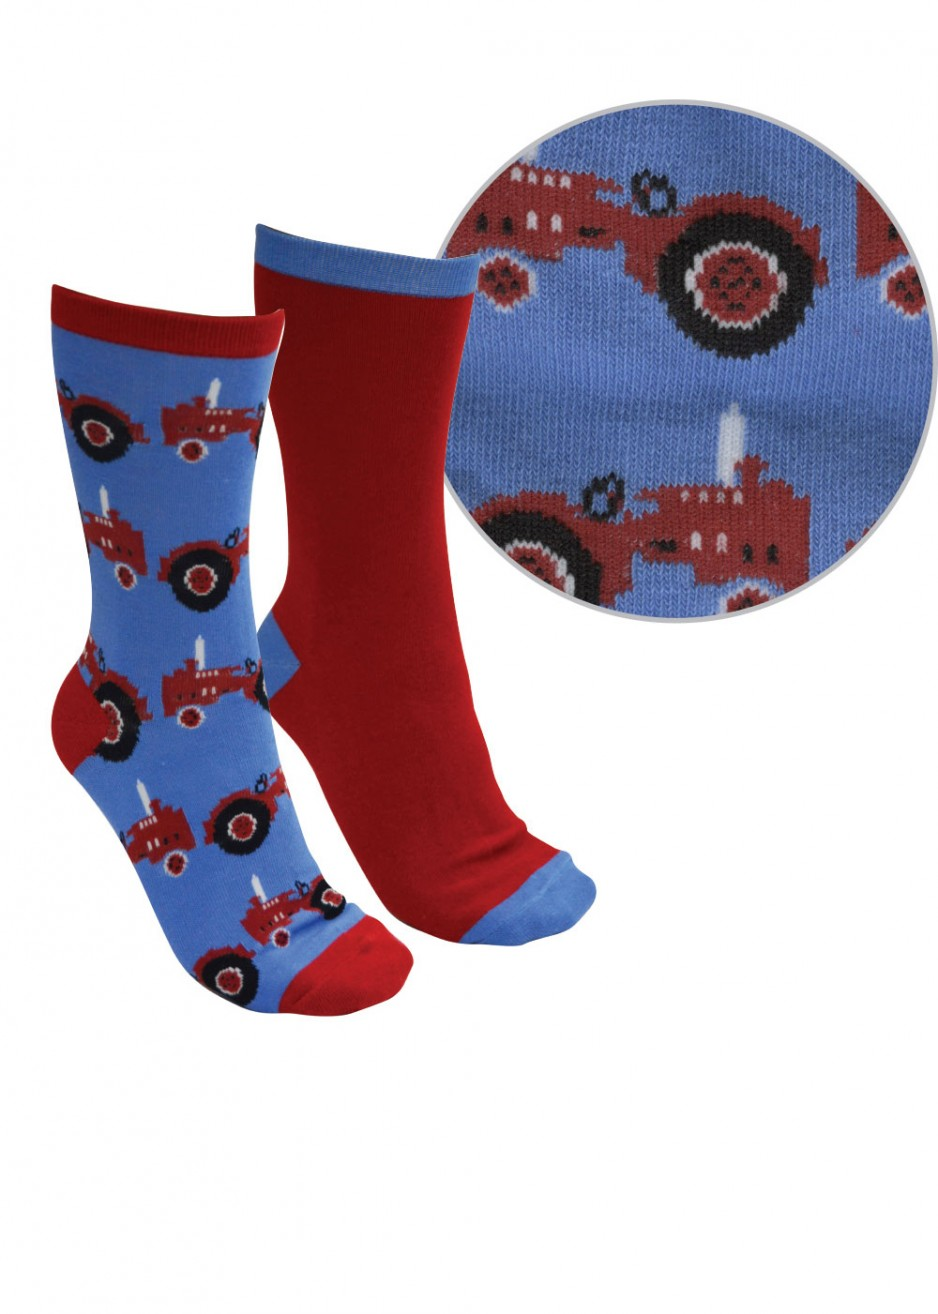 KIDS FARMYARD SOCKS - TWIN PACK